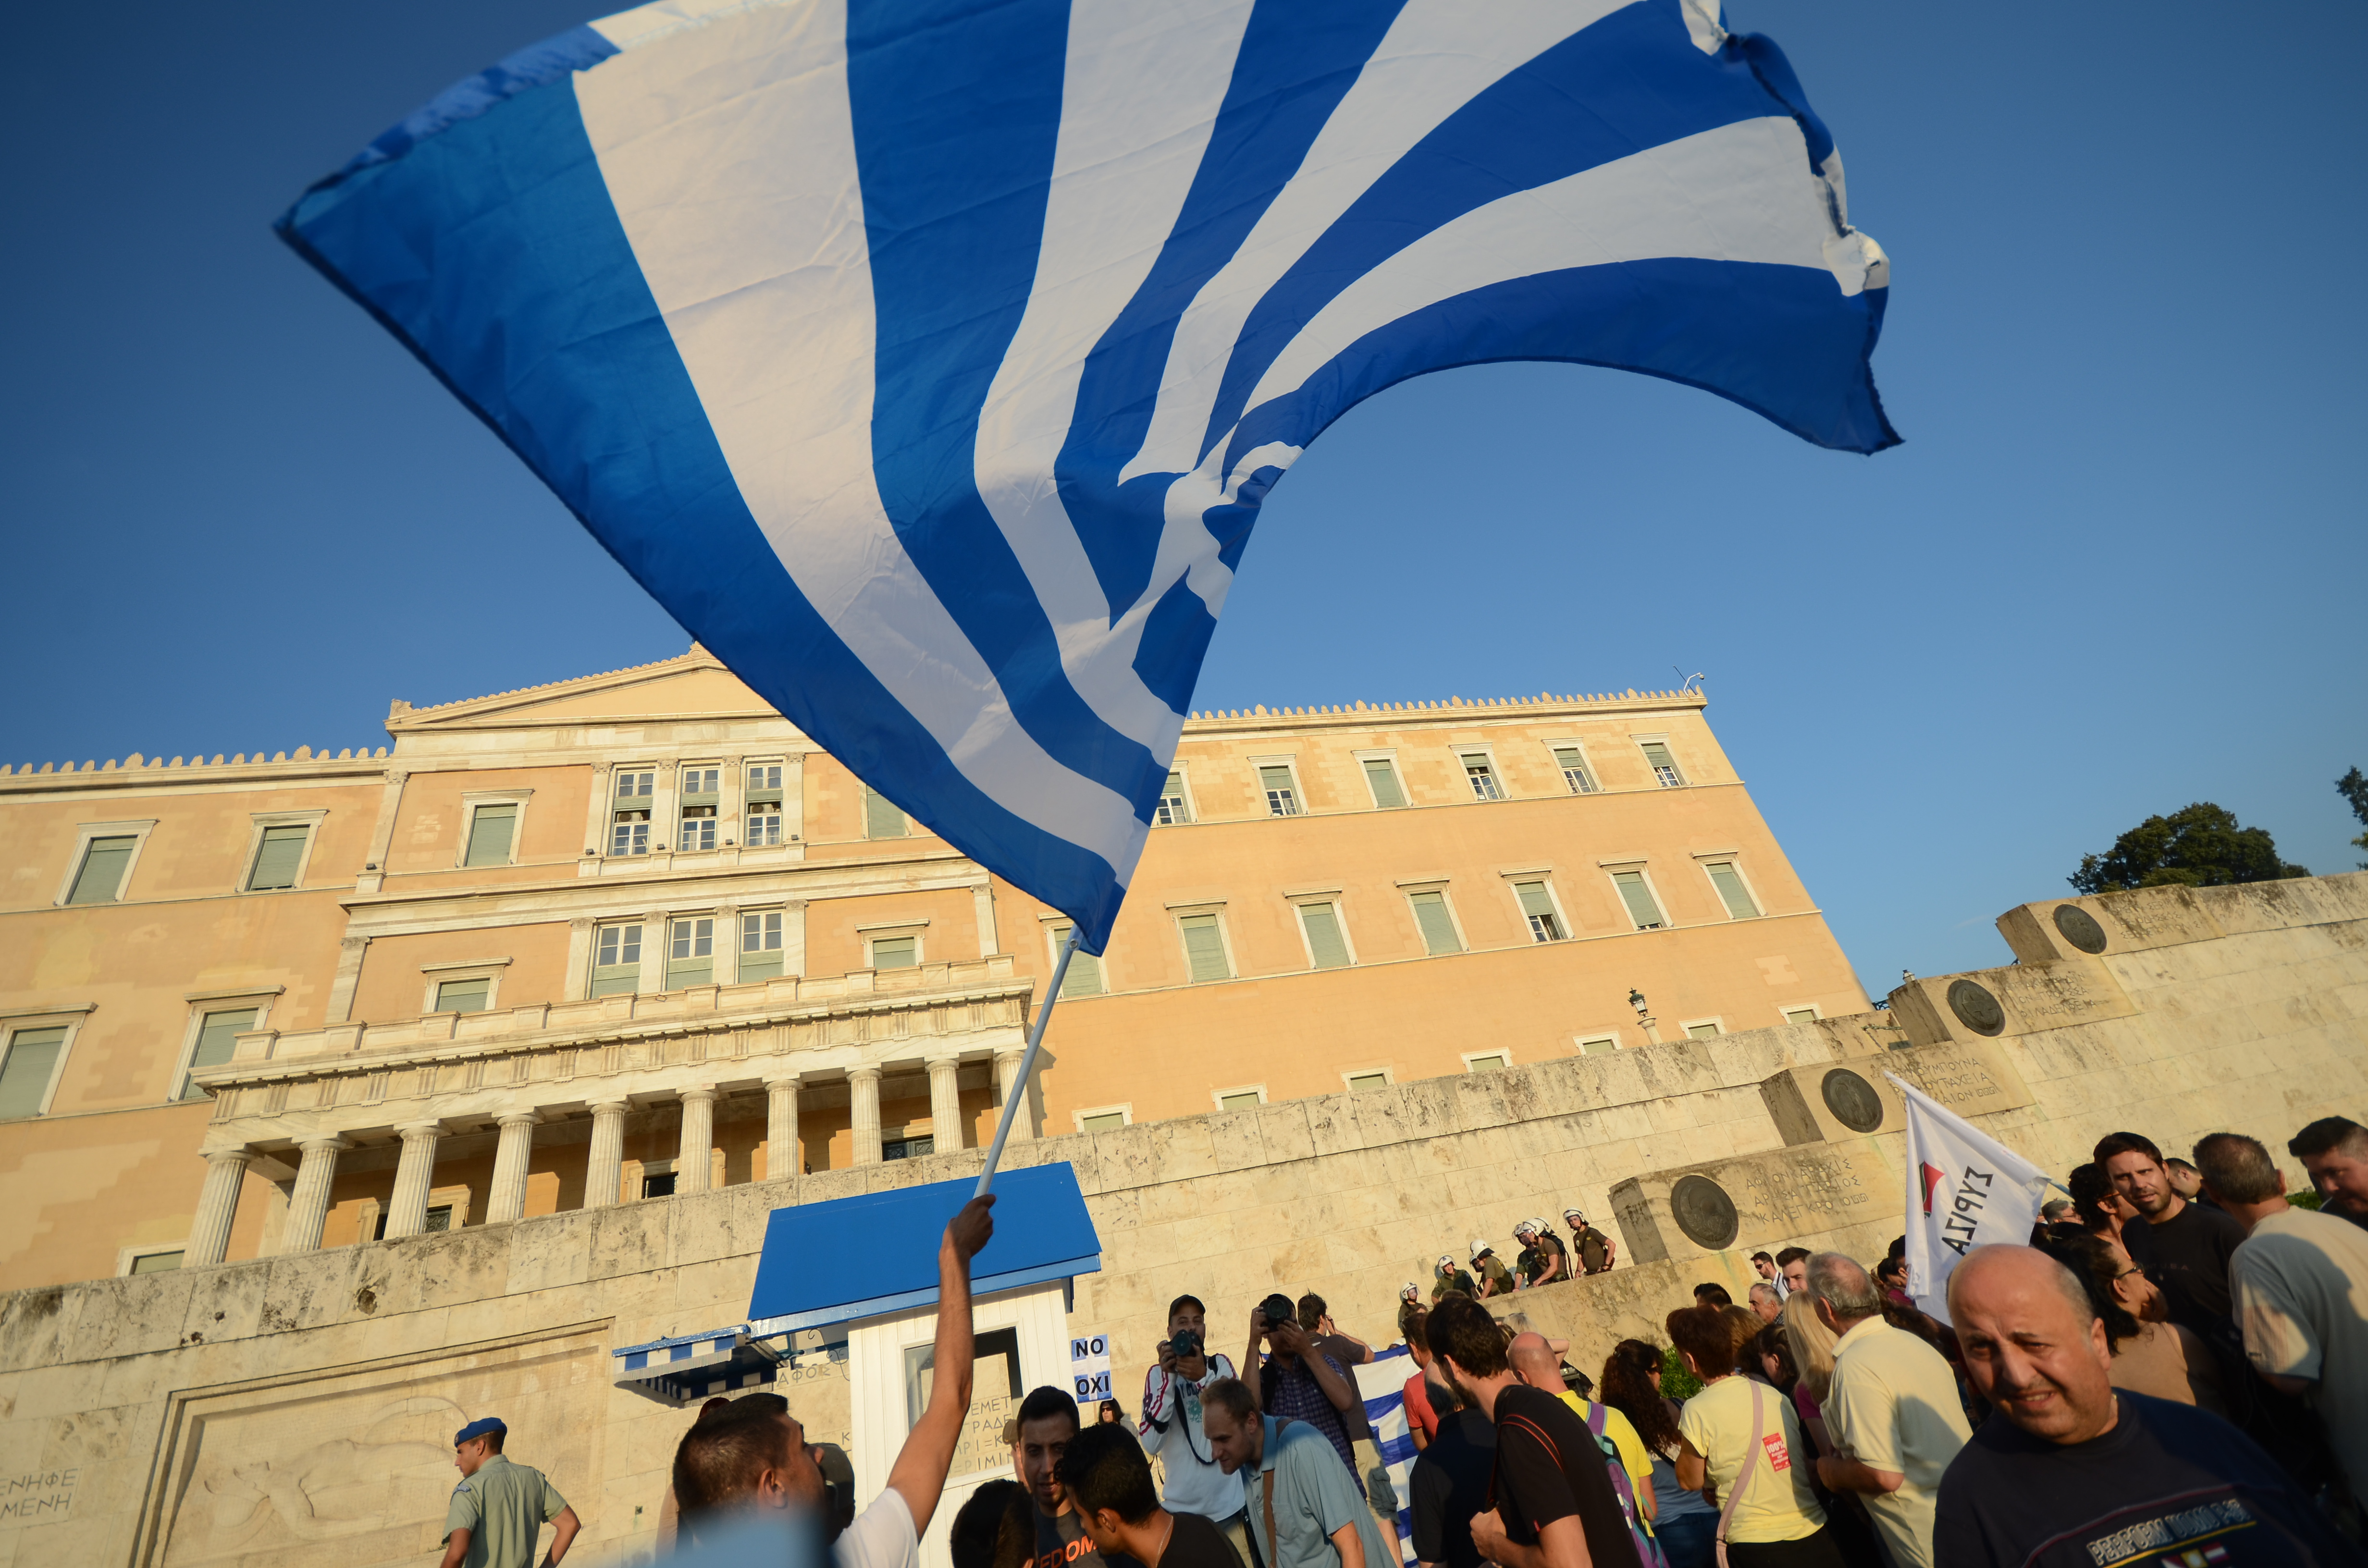 People waving flags at Syntagma square.  (George Panagakis--Pacific Press/LightRocket via Getty Images)